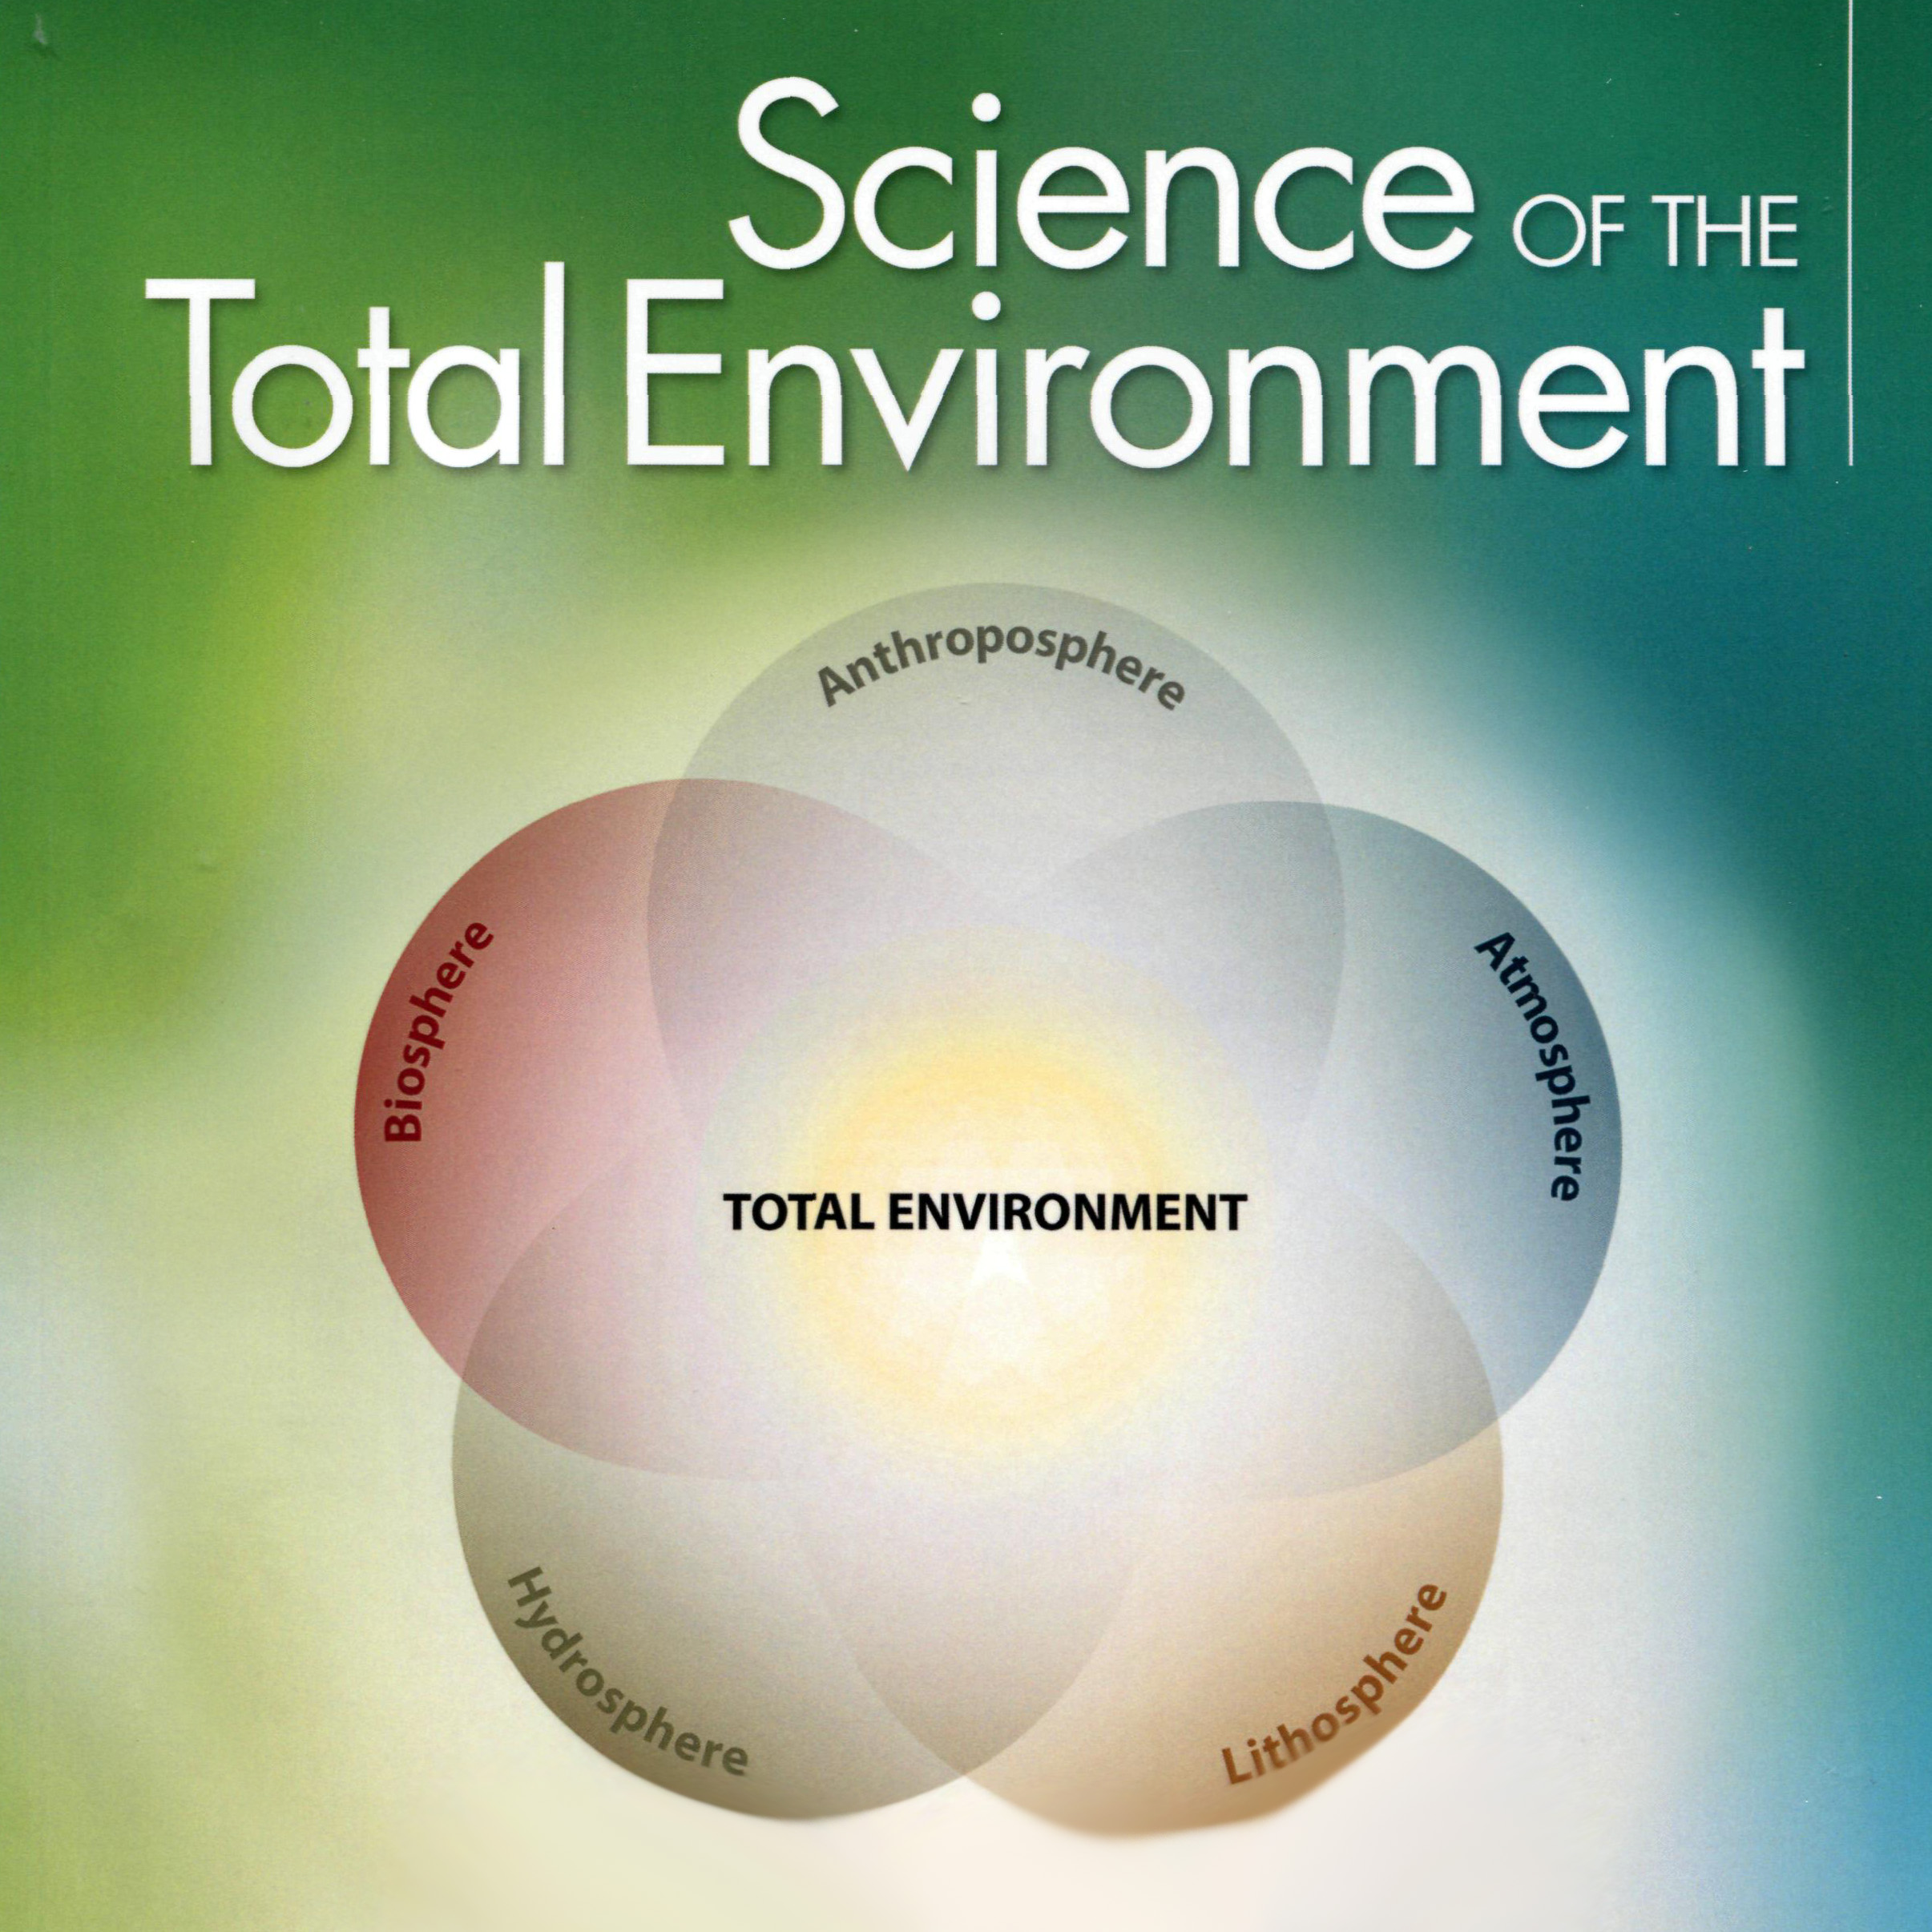 STOTEN PAPER   By M.E.Wilkinson, P.F. Quinn, N.J. Barber, J. Jonczyk  A framework for managing runoff and pollution in the rural landscape using a Catchment Systems Engineering approach.  Click the image to download the PDF